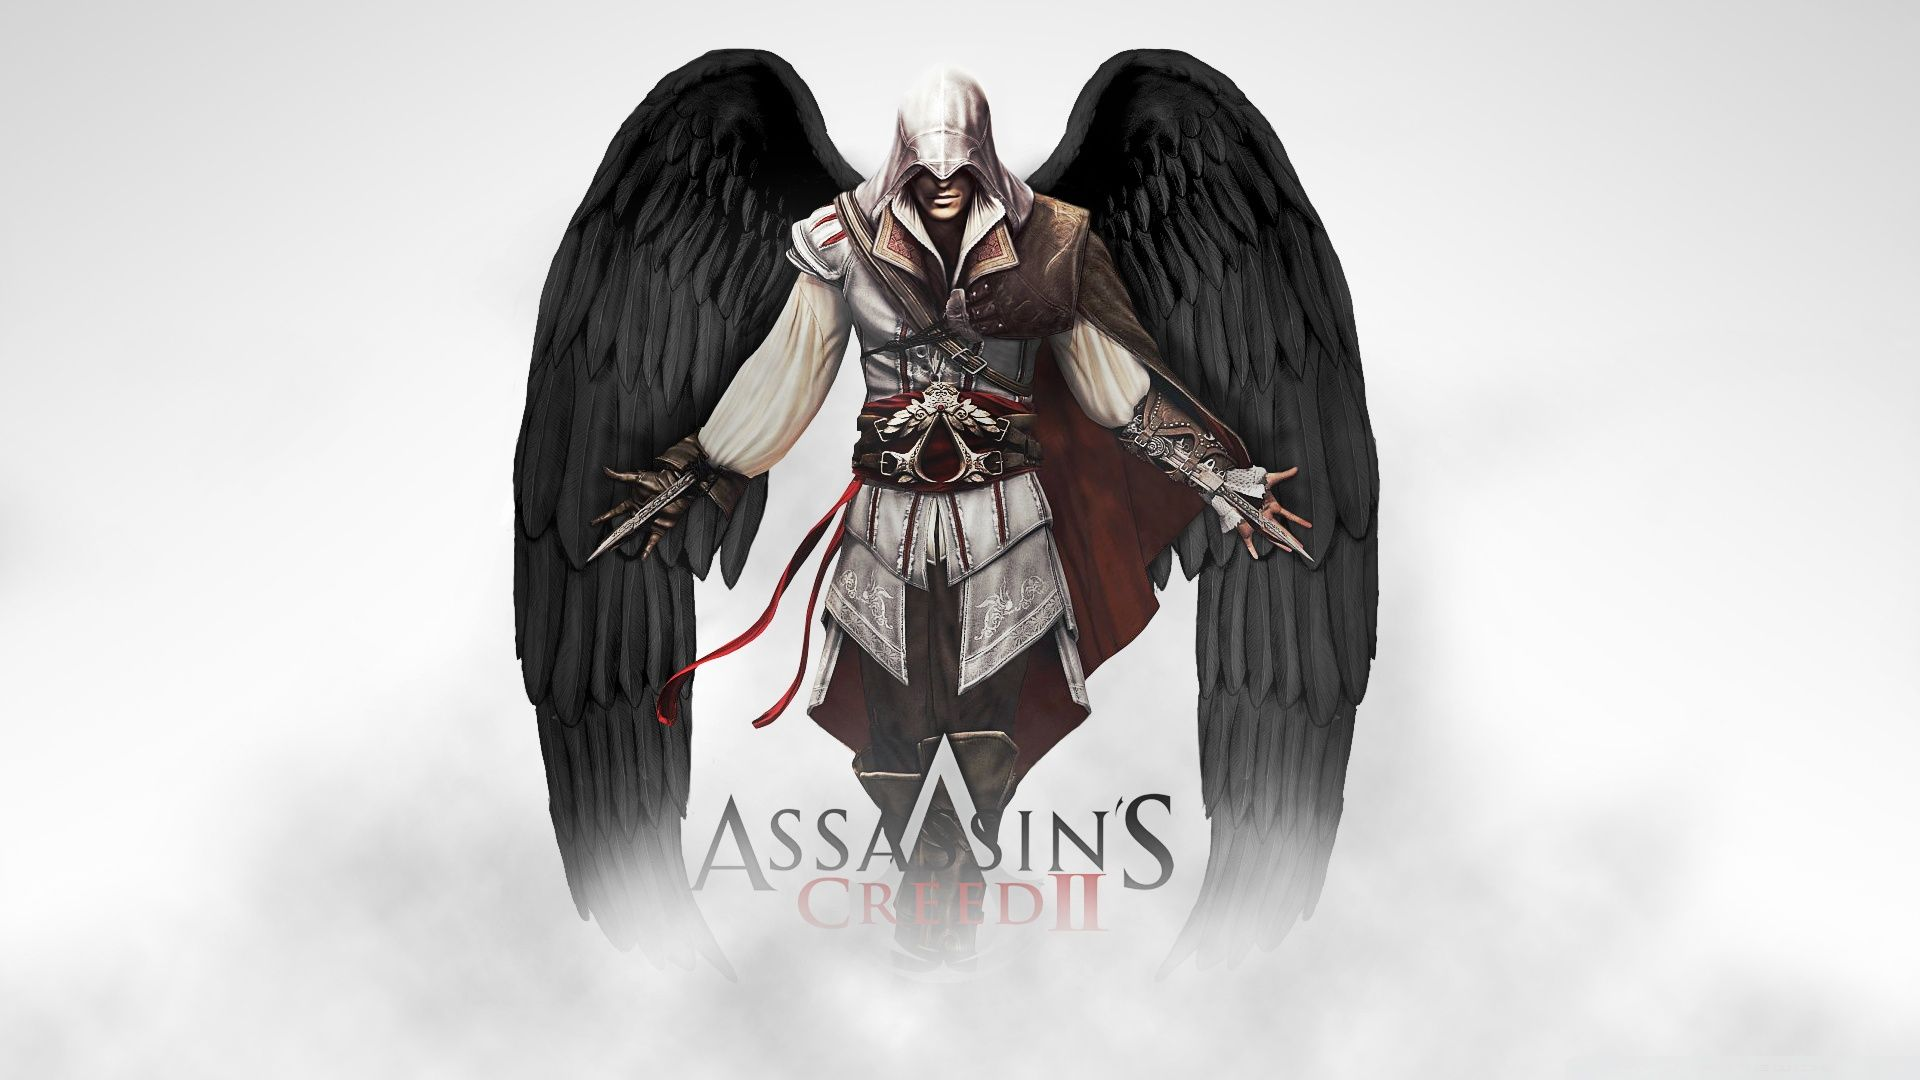 Explore Assassins Creed 2 Widescreen Wallpaper And More